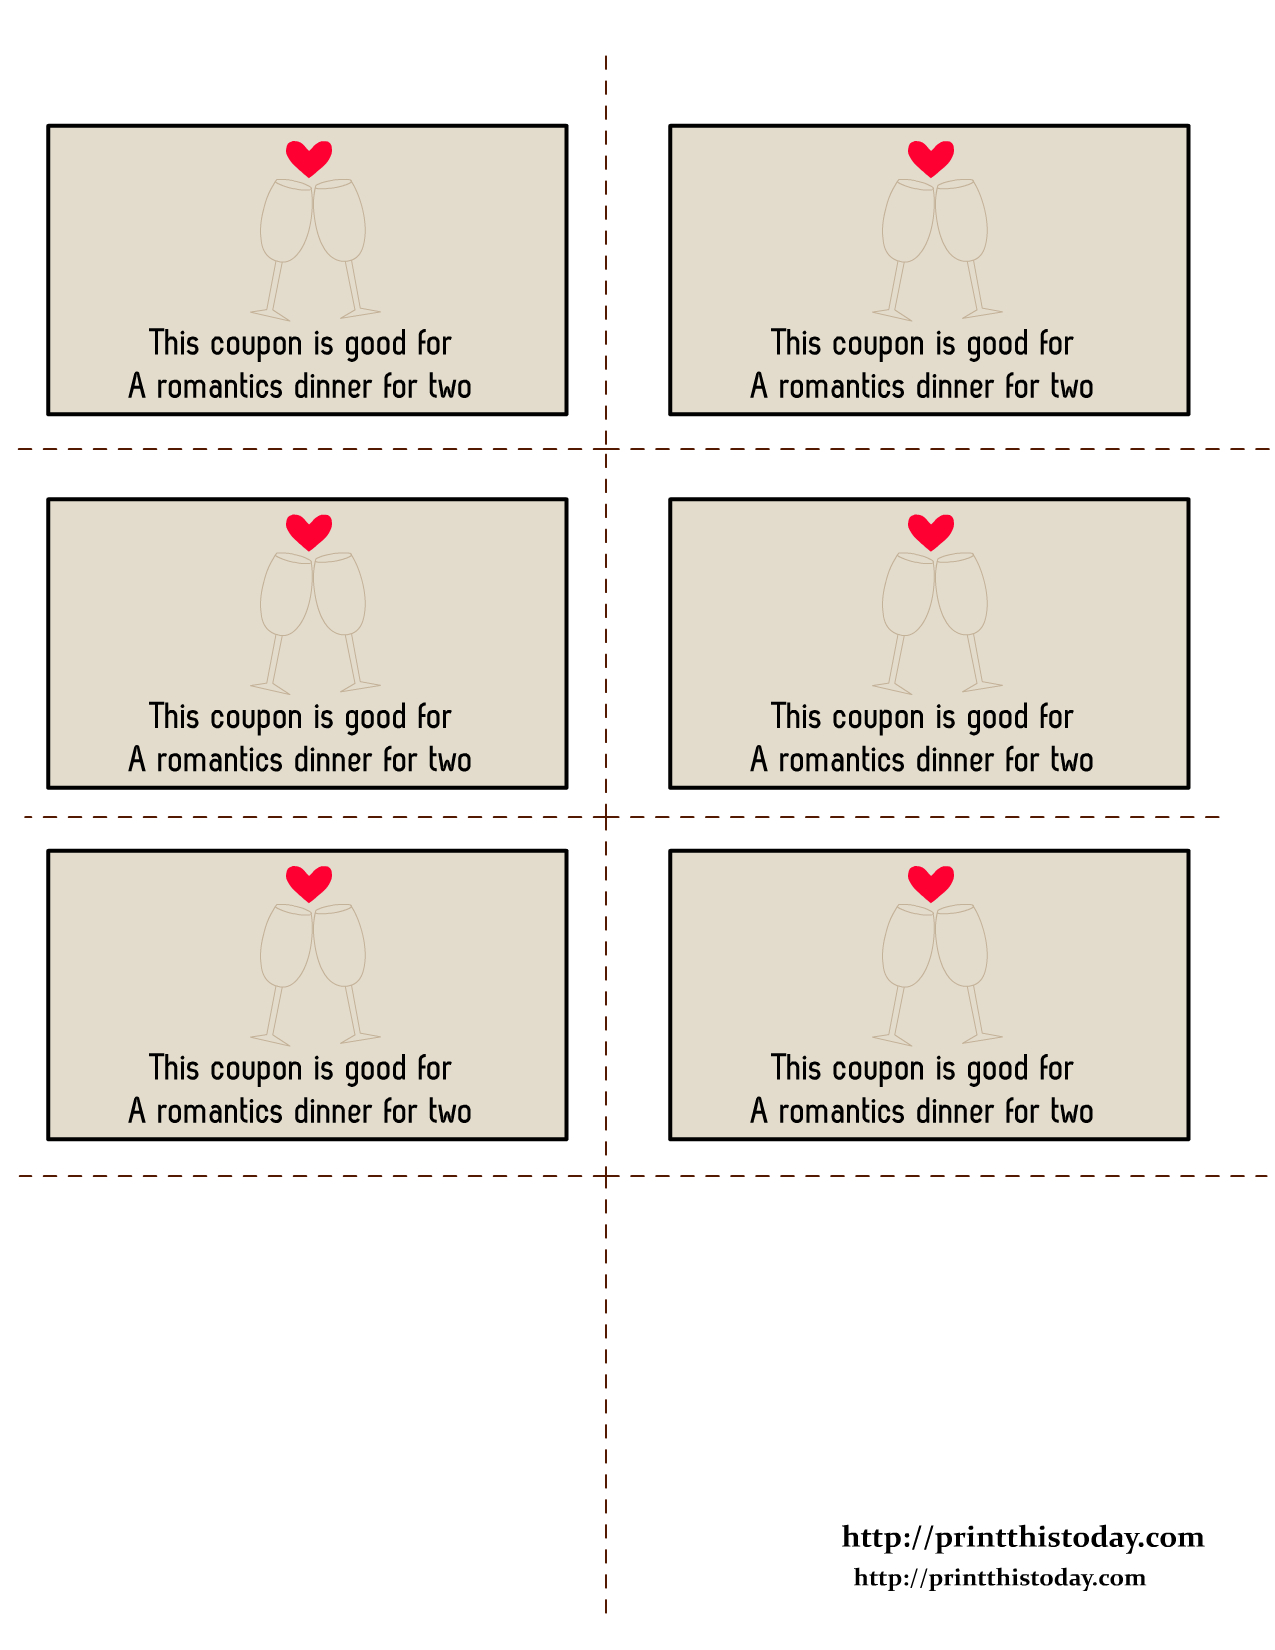 Free Printable Valentine Coupons | Free Printables | Love Coupons - Love Coupons For Him Printable Free